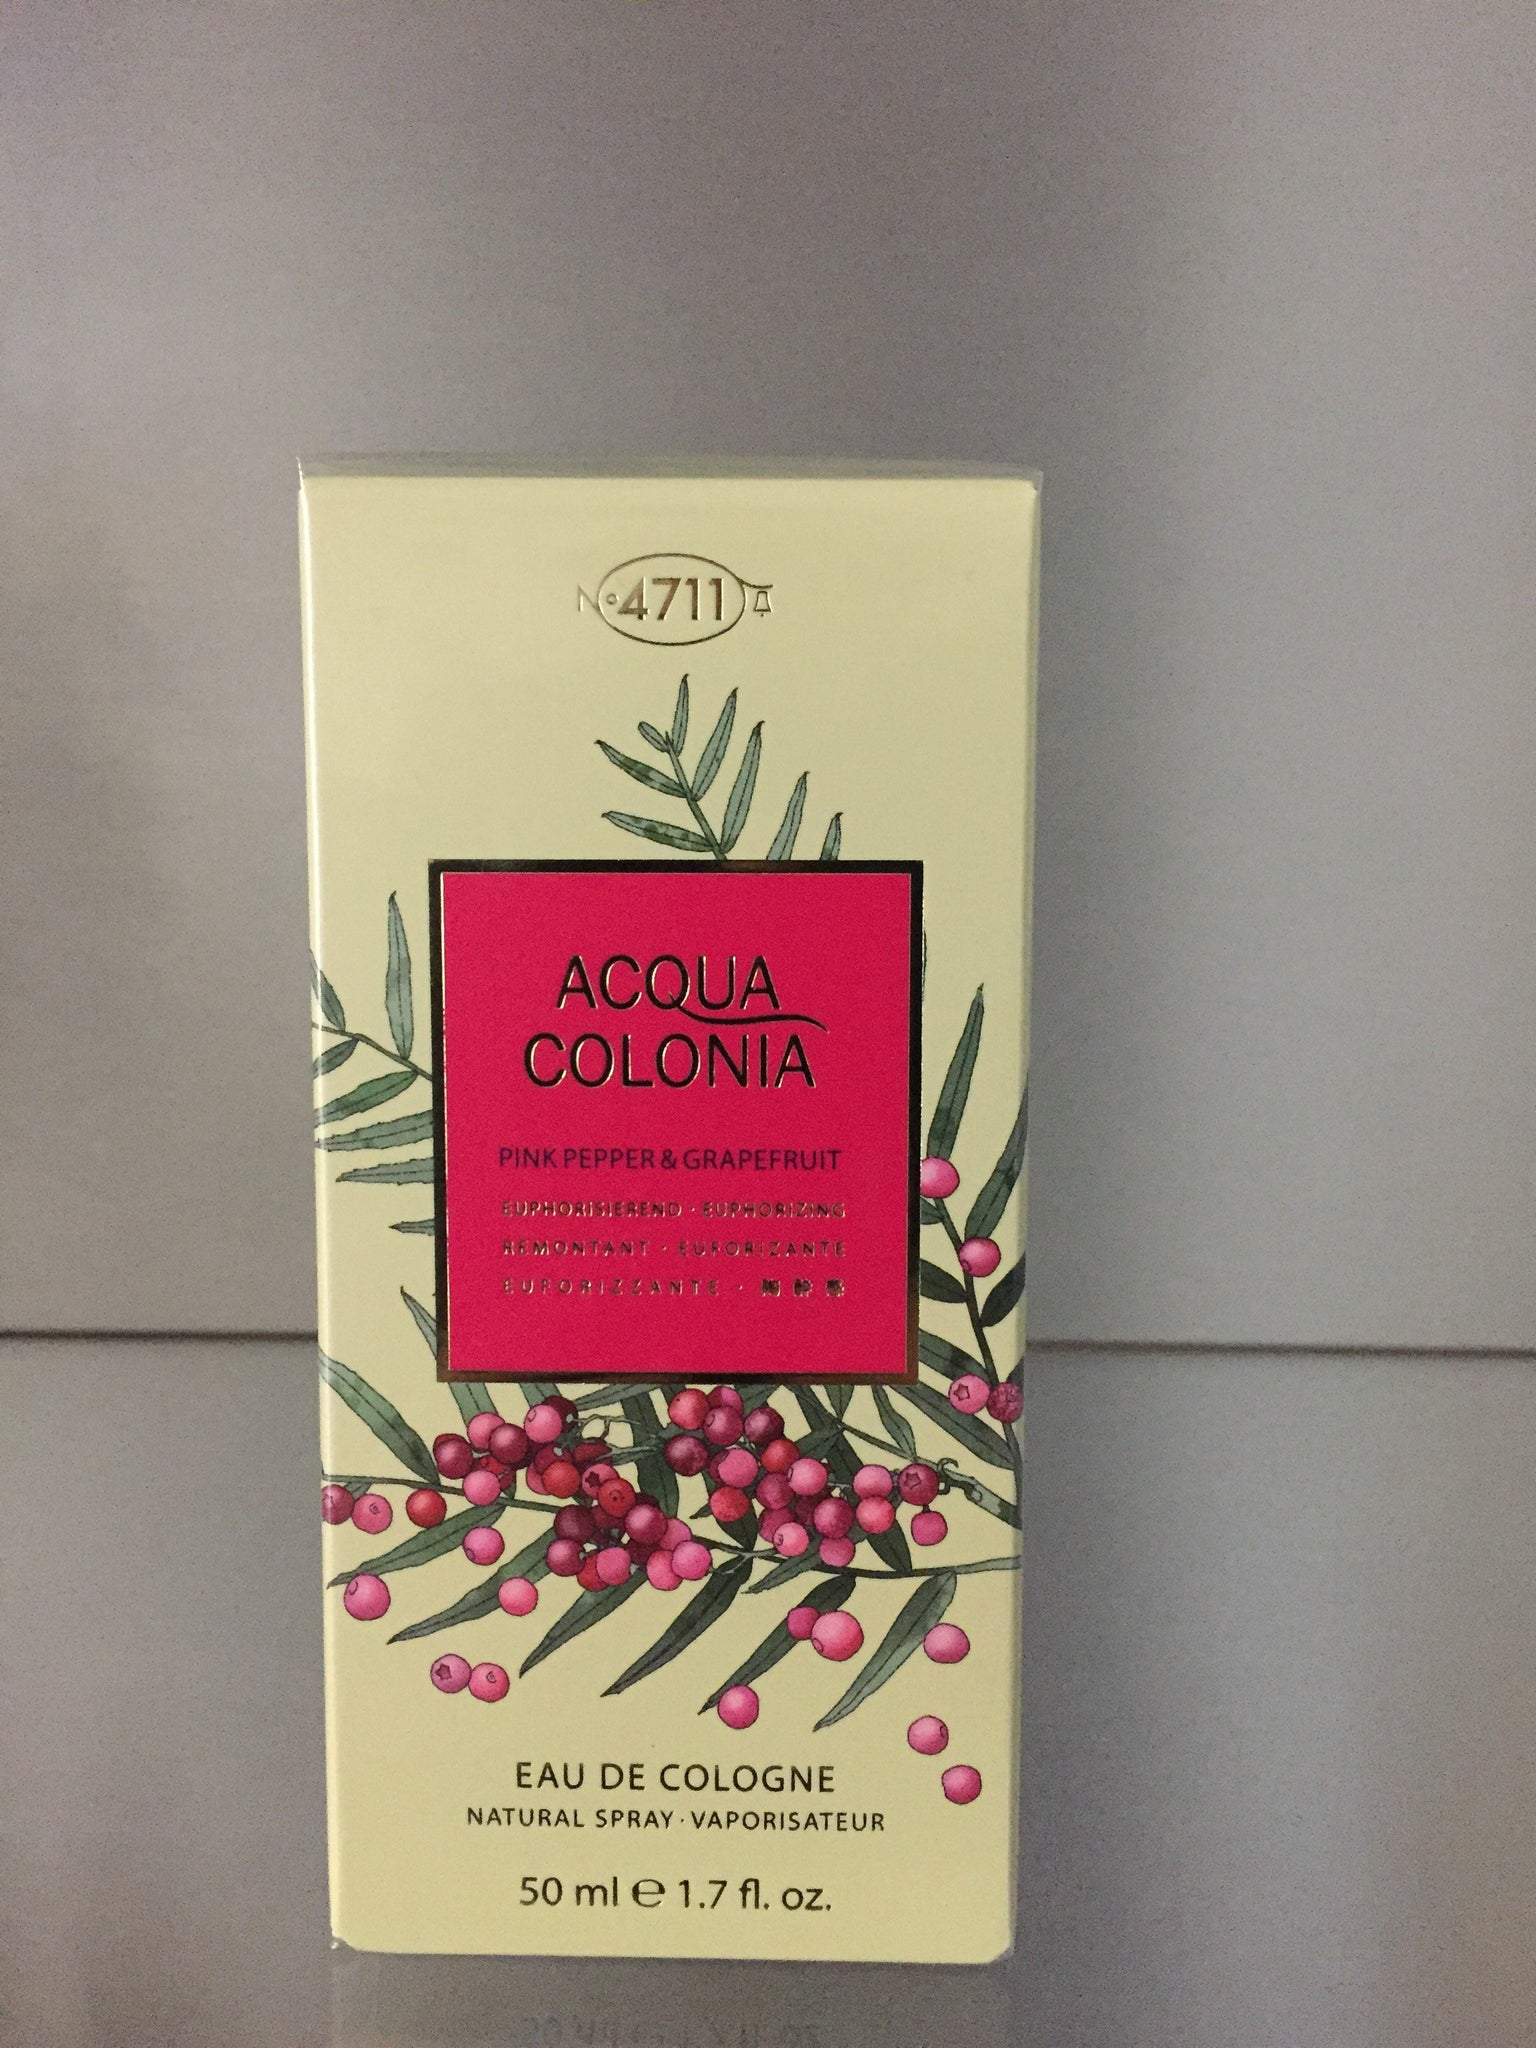 4711 Acqua Colonia - PINK PEPPER & GRAPEFRUIT 50ml